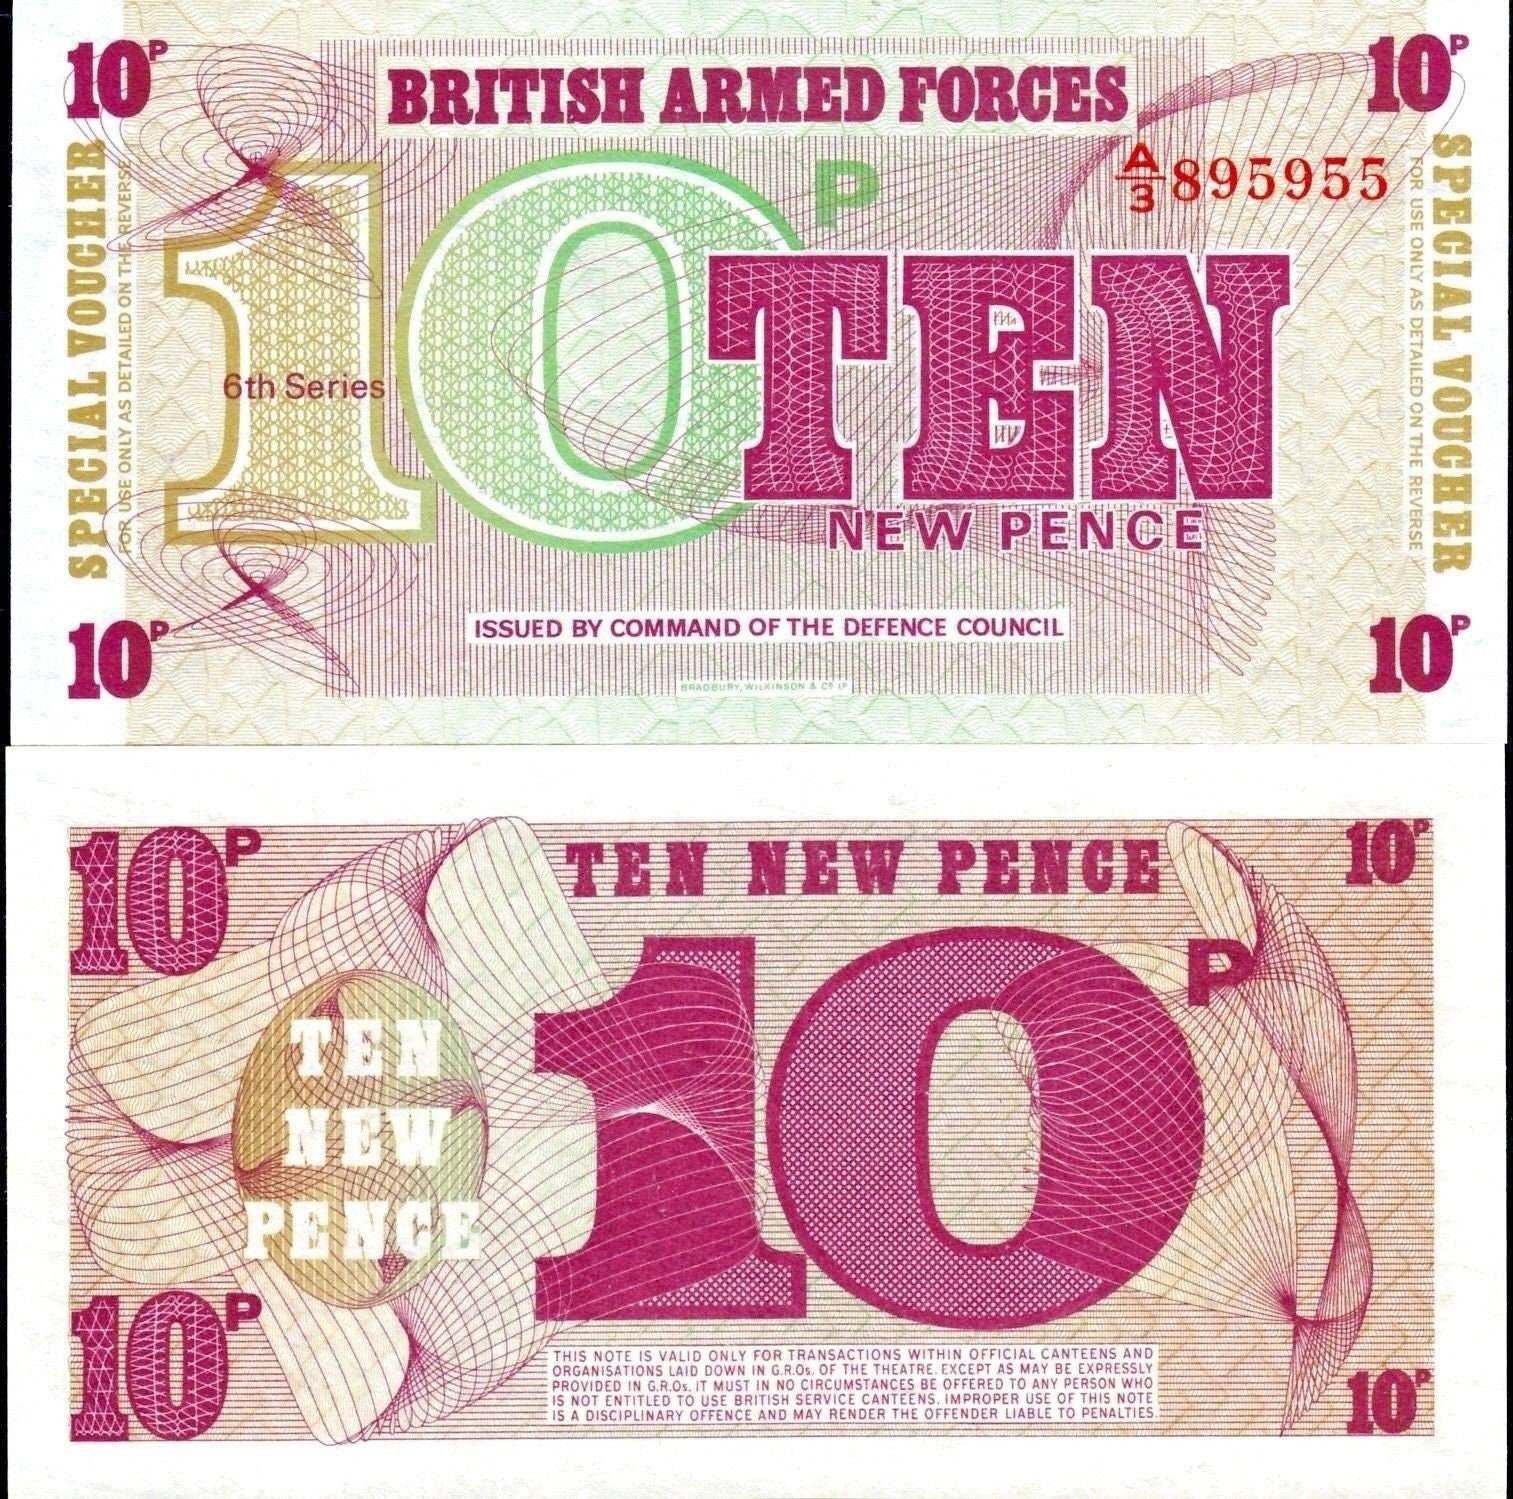 British Armed Forces UK 6th Ser 10 1972 Set of 3 Notes: 5 50 New Pence UNC